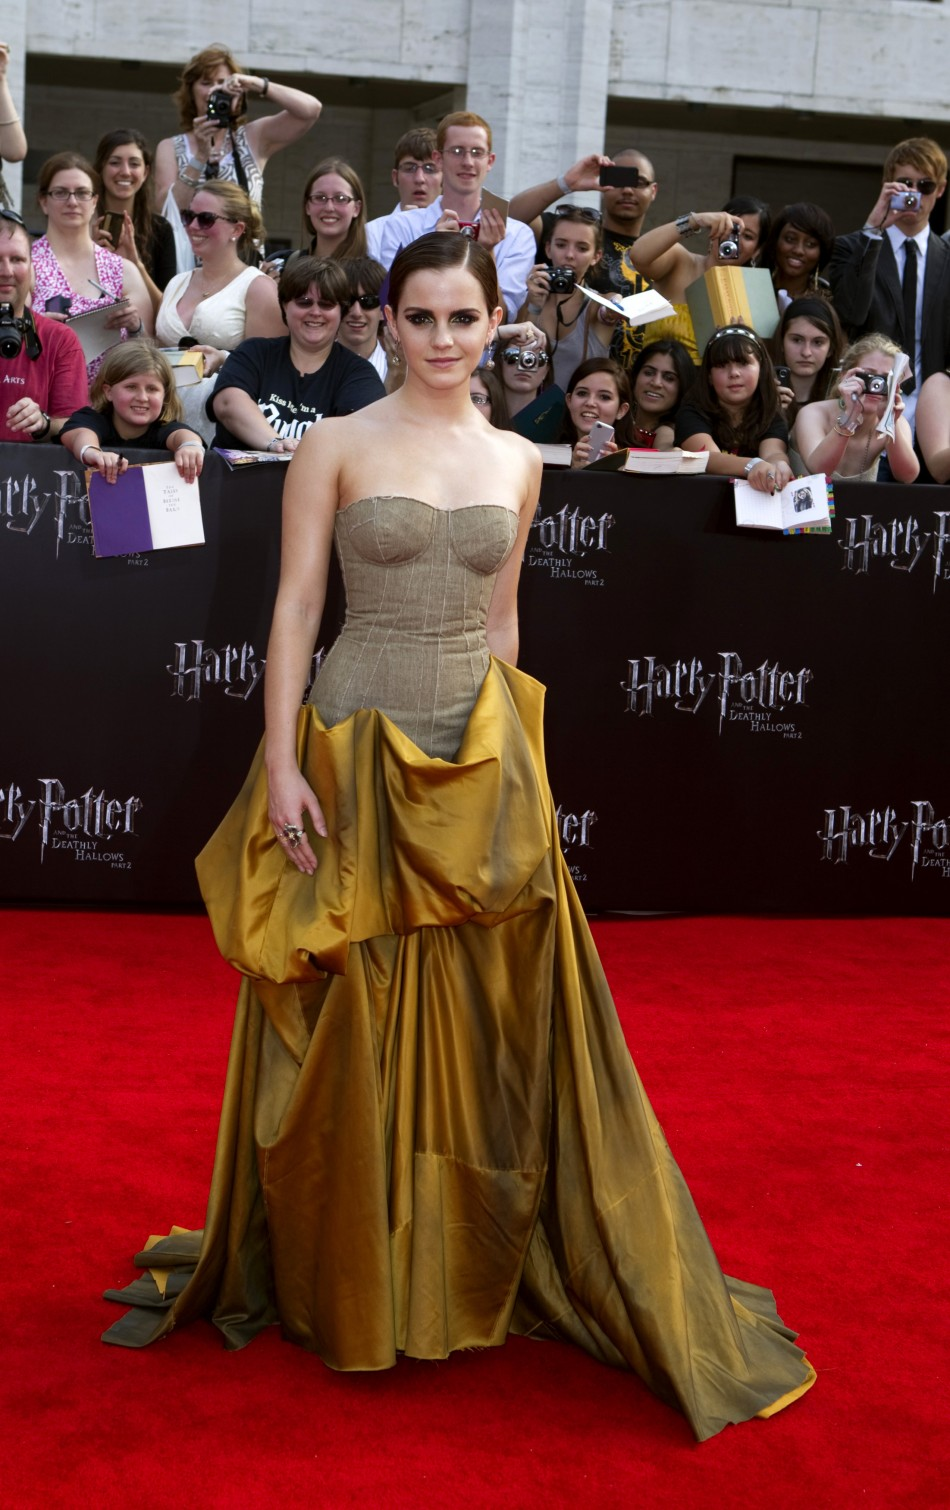 Emma Watson Harry Potter And The Deathly Hallows Part 2 Premiere Dress Which Emma Watson Prem...